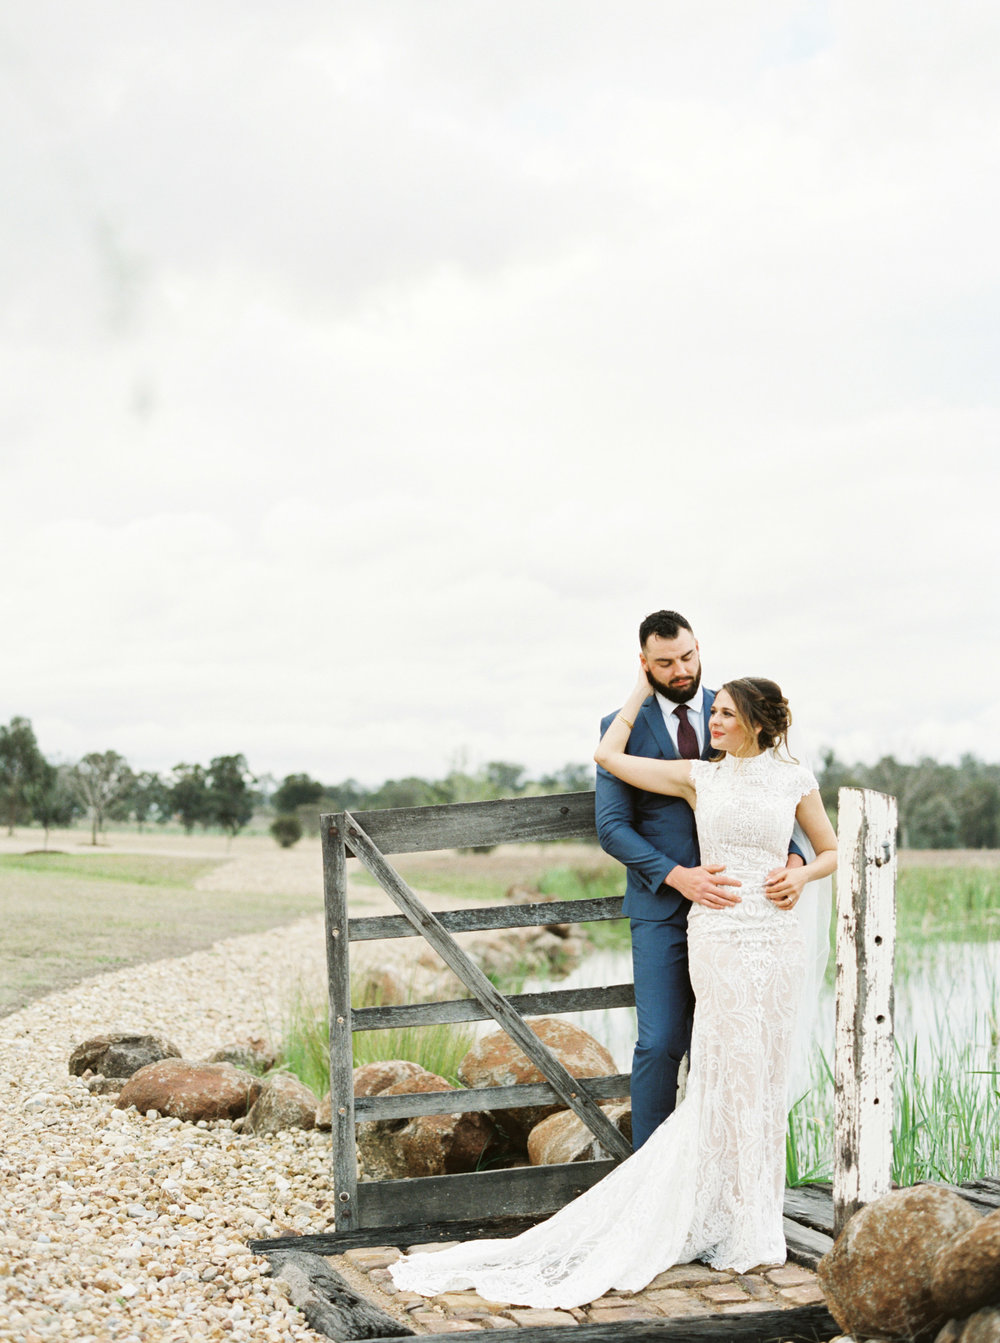 00394- Fine Art Film Hunter Valley Mudgee Destination Wedding Photographer Sheri McMahon.jpg